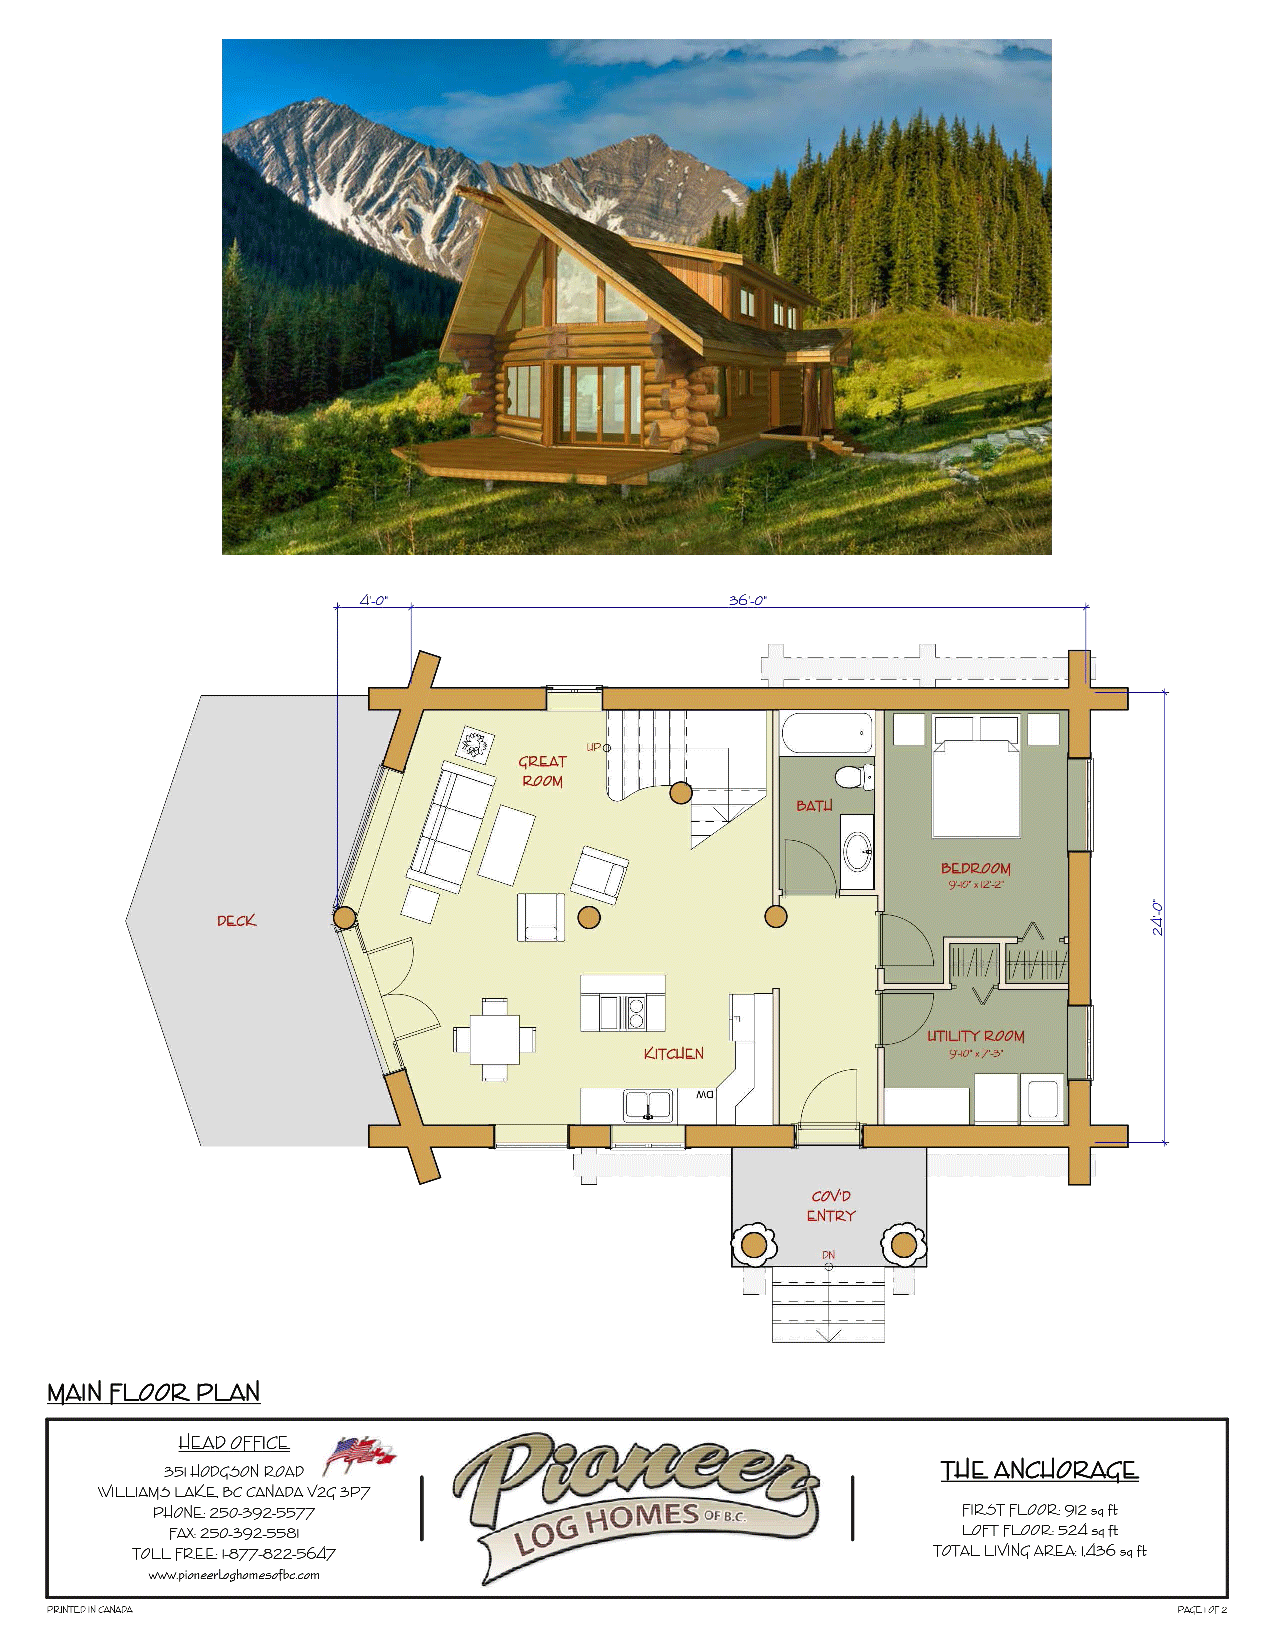 Anchorage Pioneer Log Homes Midwest Log Homes Building Plans House Timber Frame Building